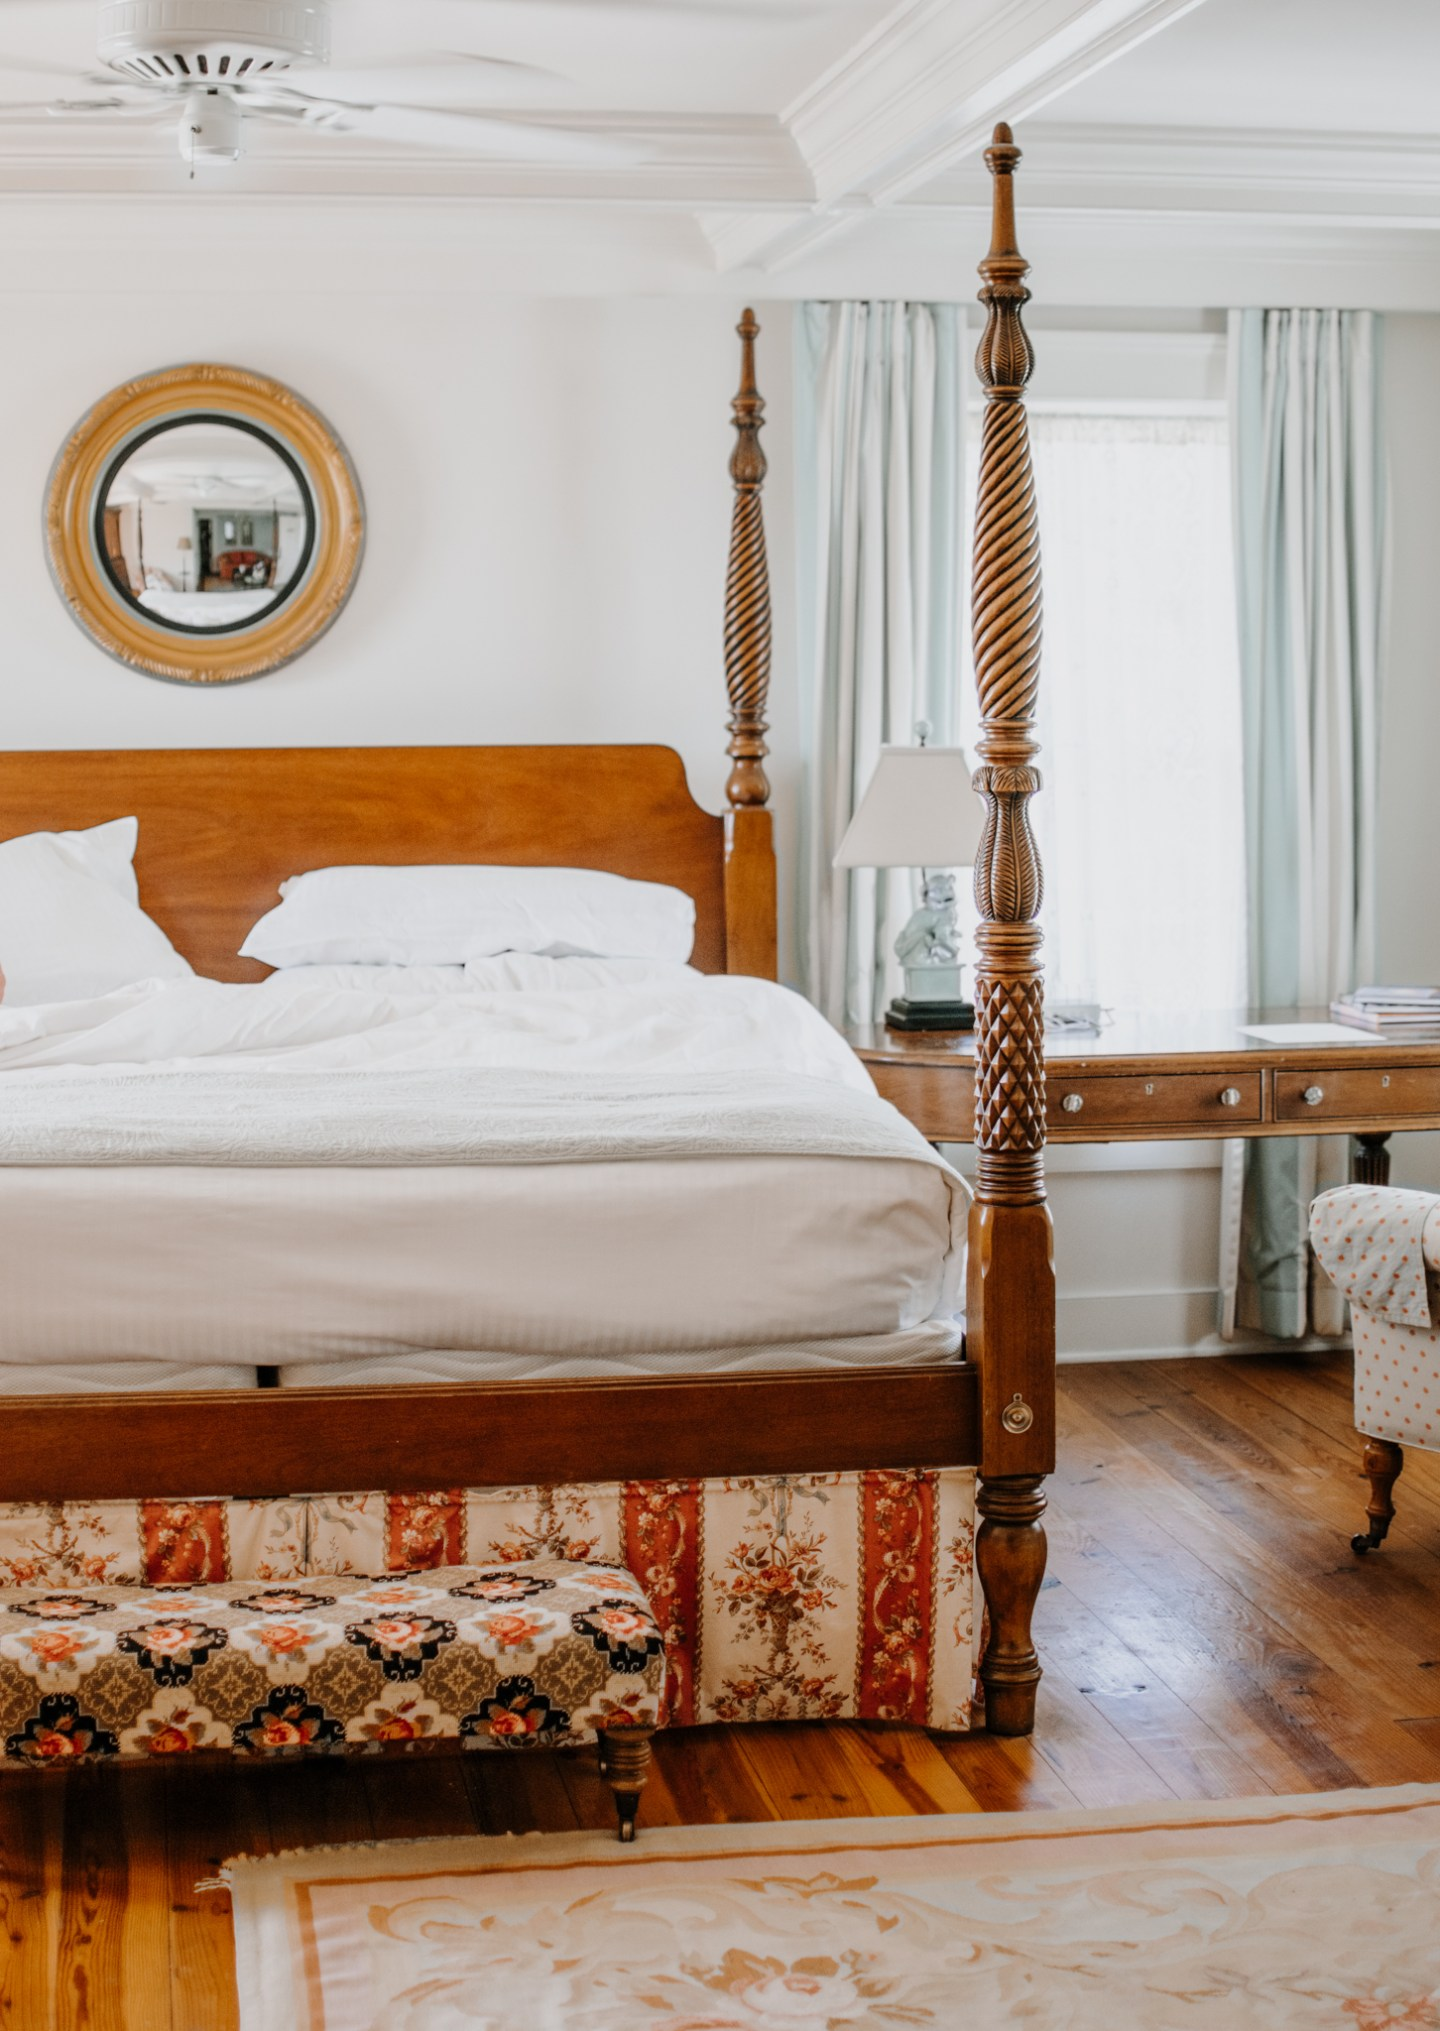 early spring stay at the farmhouse at veritas - farmhouse at veritas review